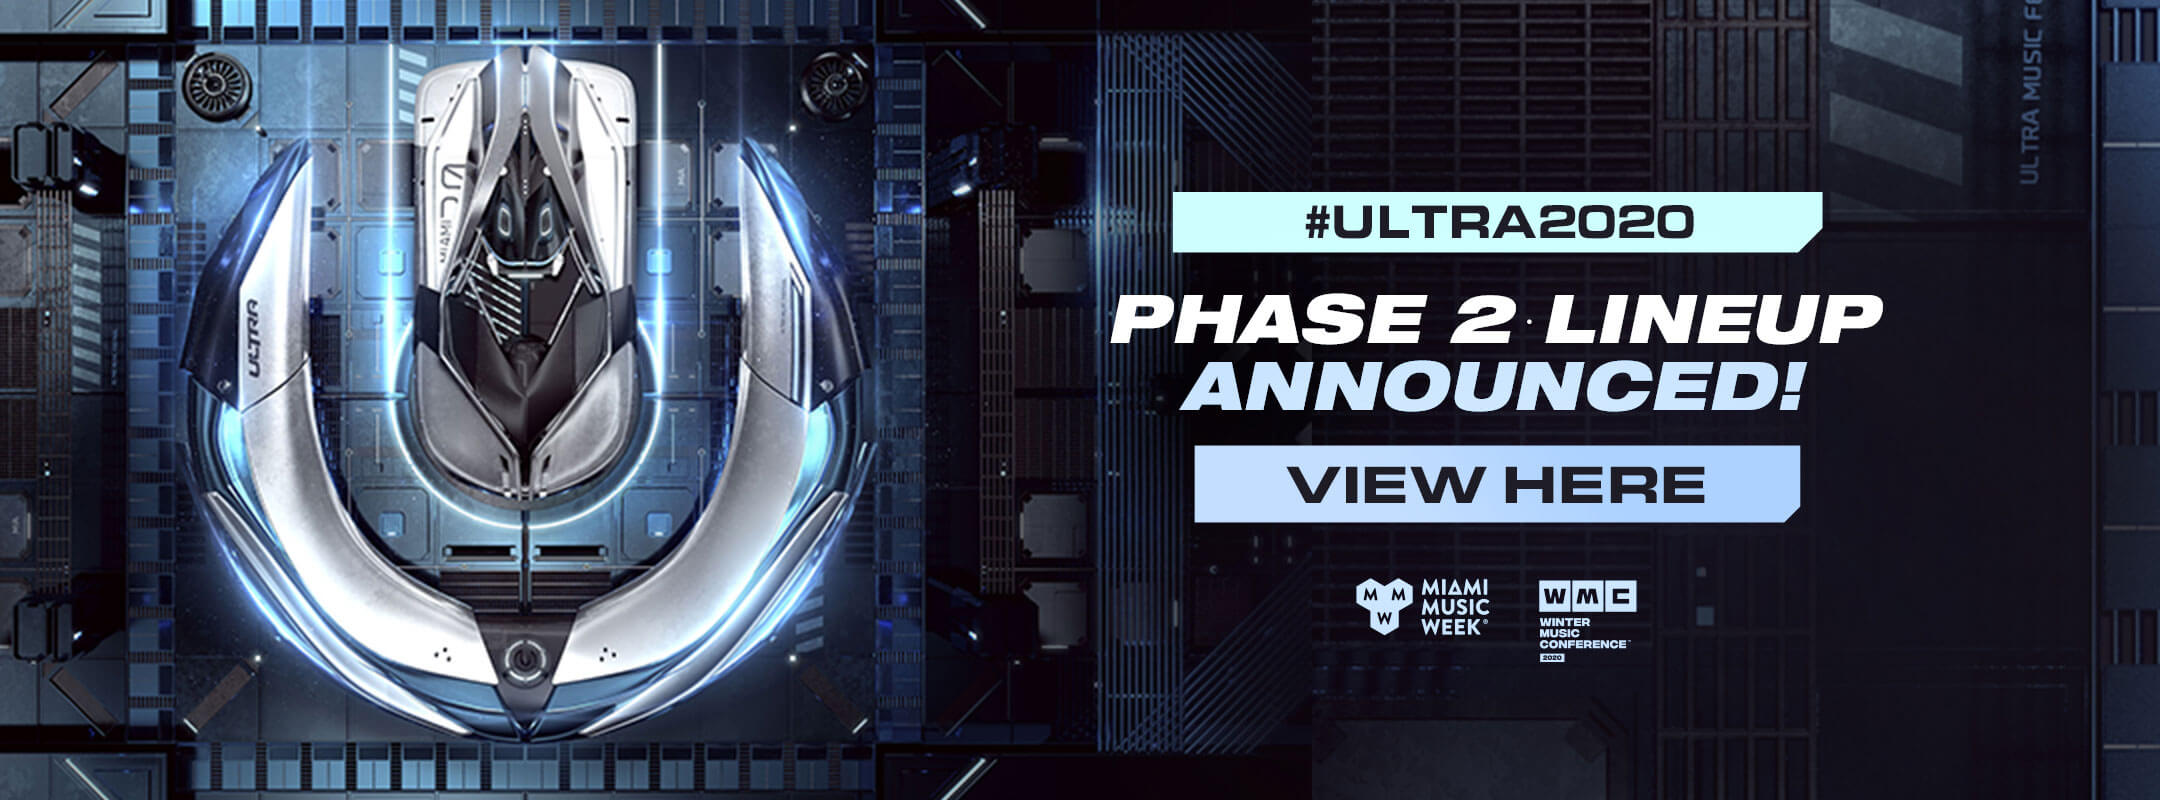 View the Ultra Music Festival 2020 Phase 2 Lineup